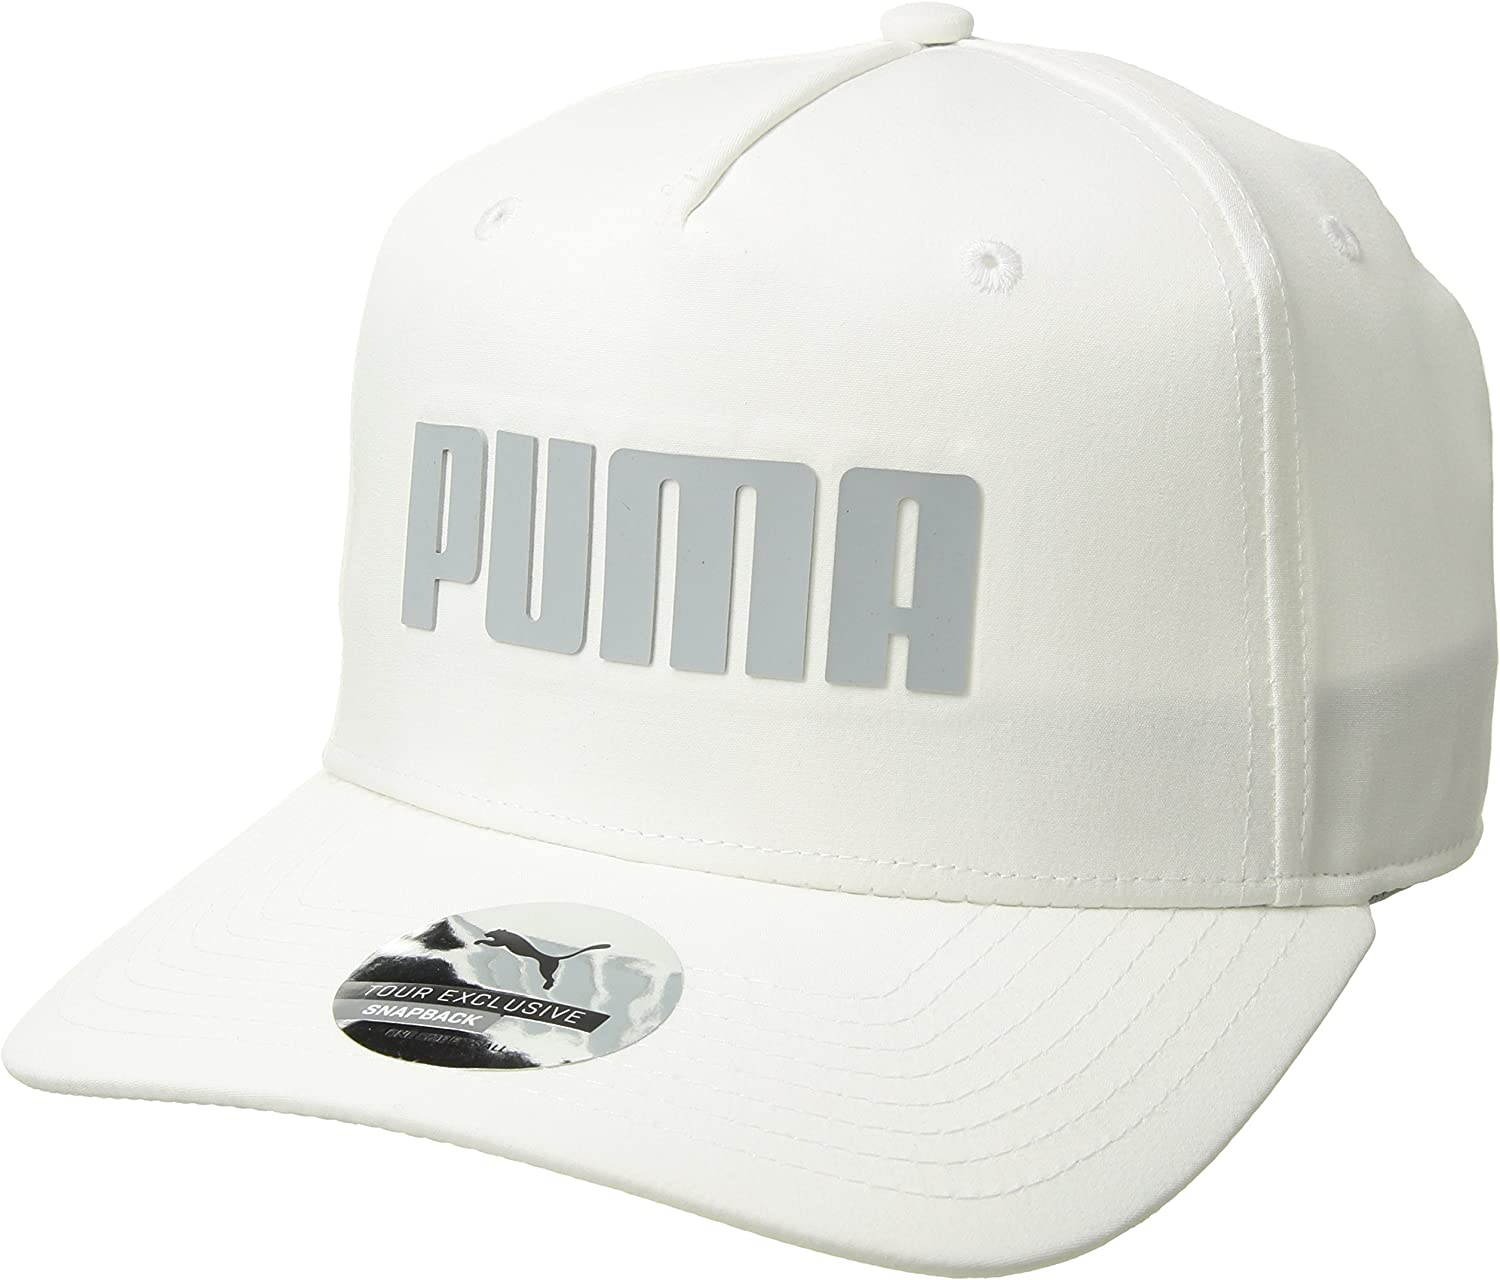 Puma Golf 2018 Kid's Go Time Snapback Hat (Quiet Shade, One Size) : Clothing